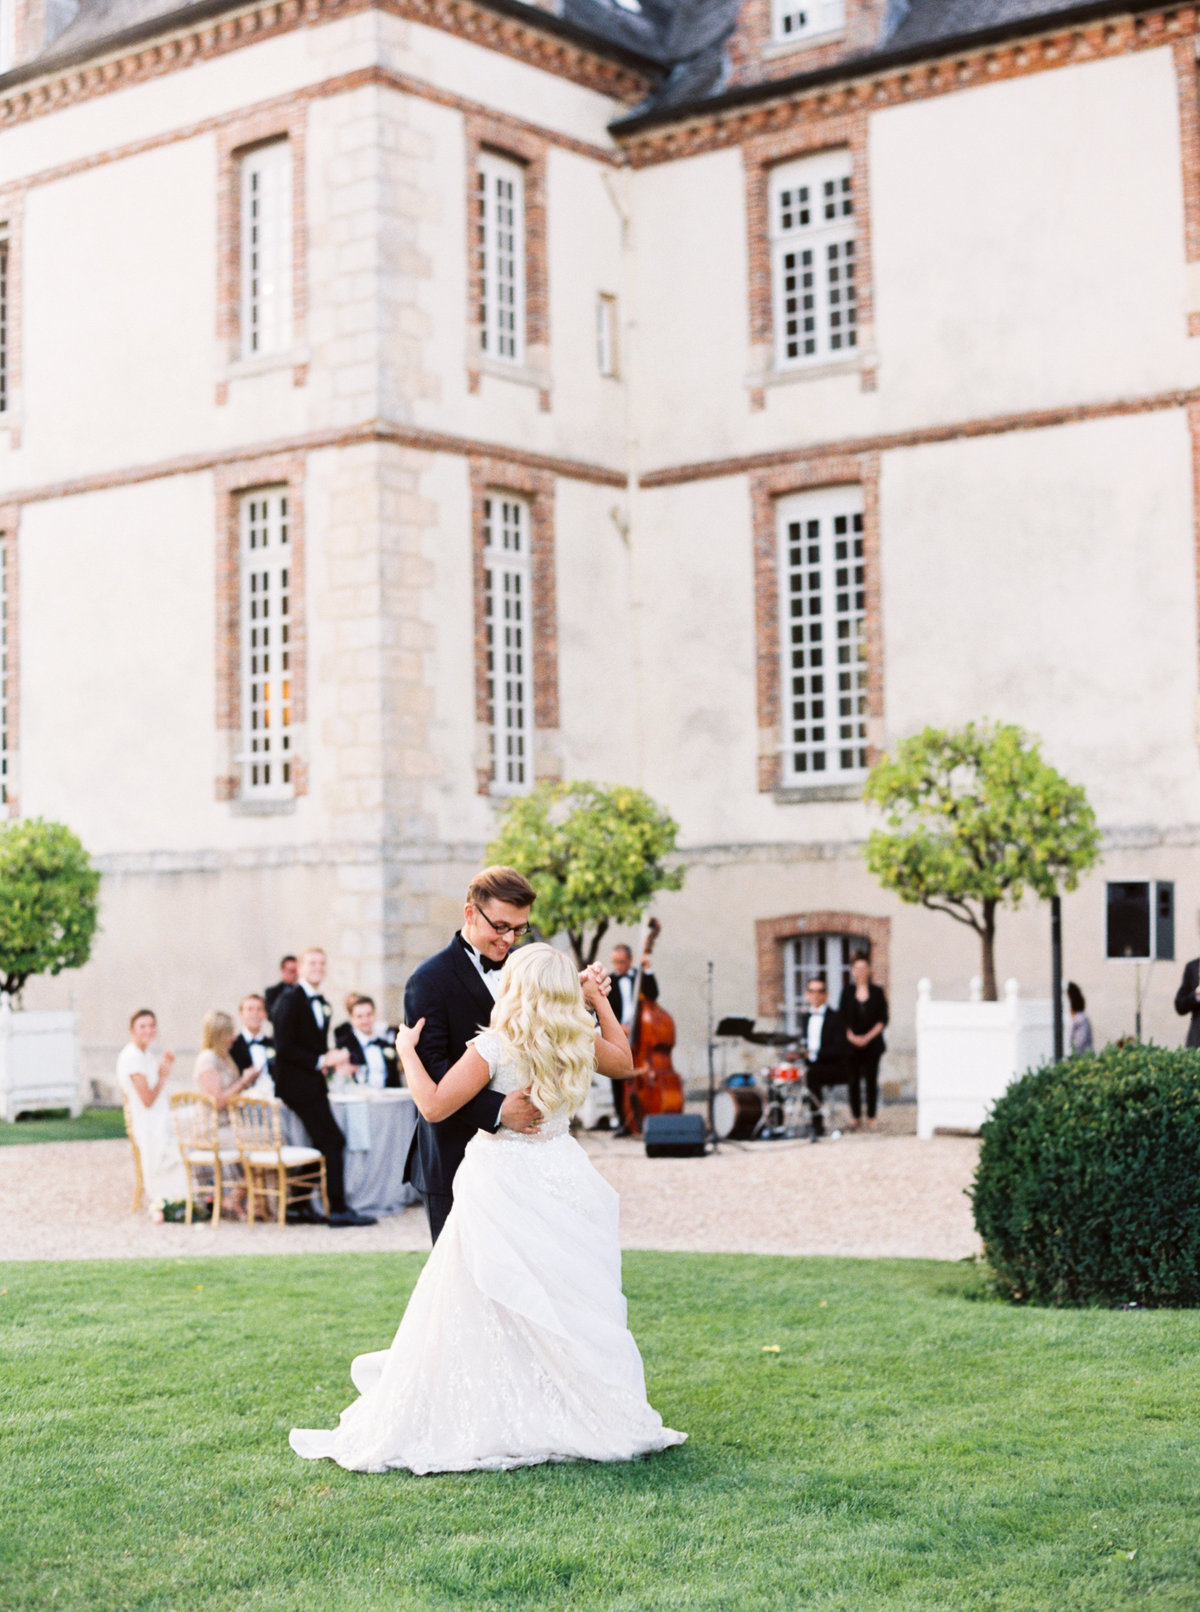 Paris France Wedding - Mary Claire Photography-37